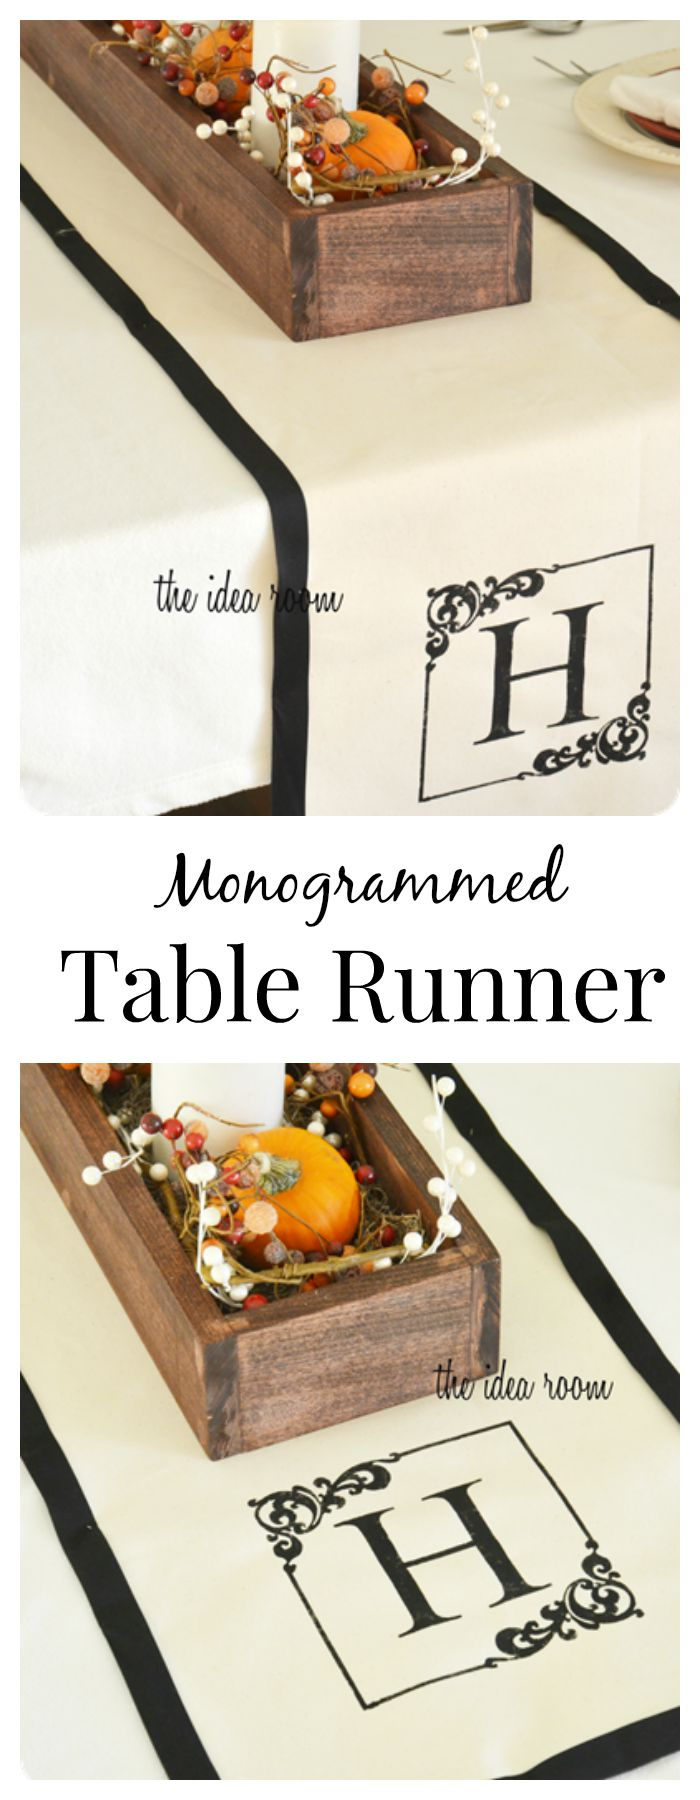 DIY-Monogrammed-Table-Runner